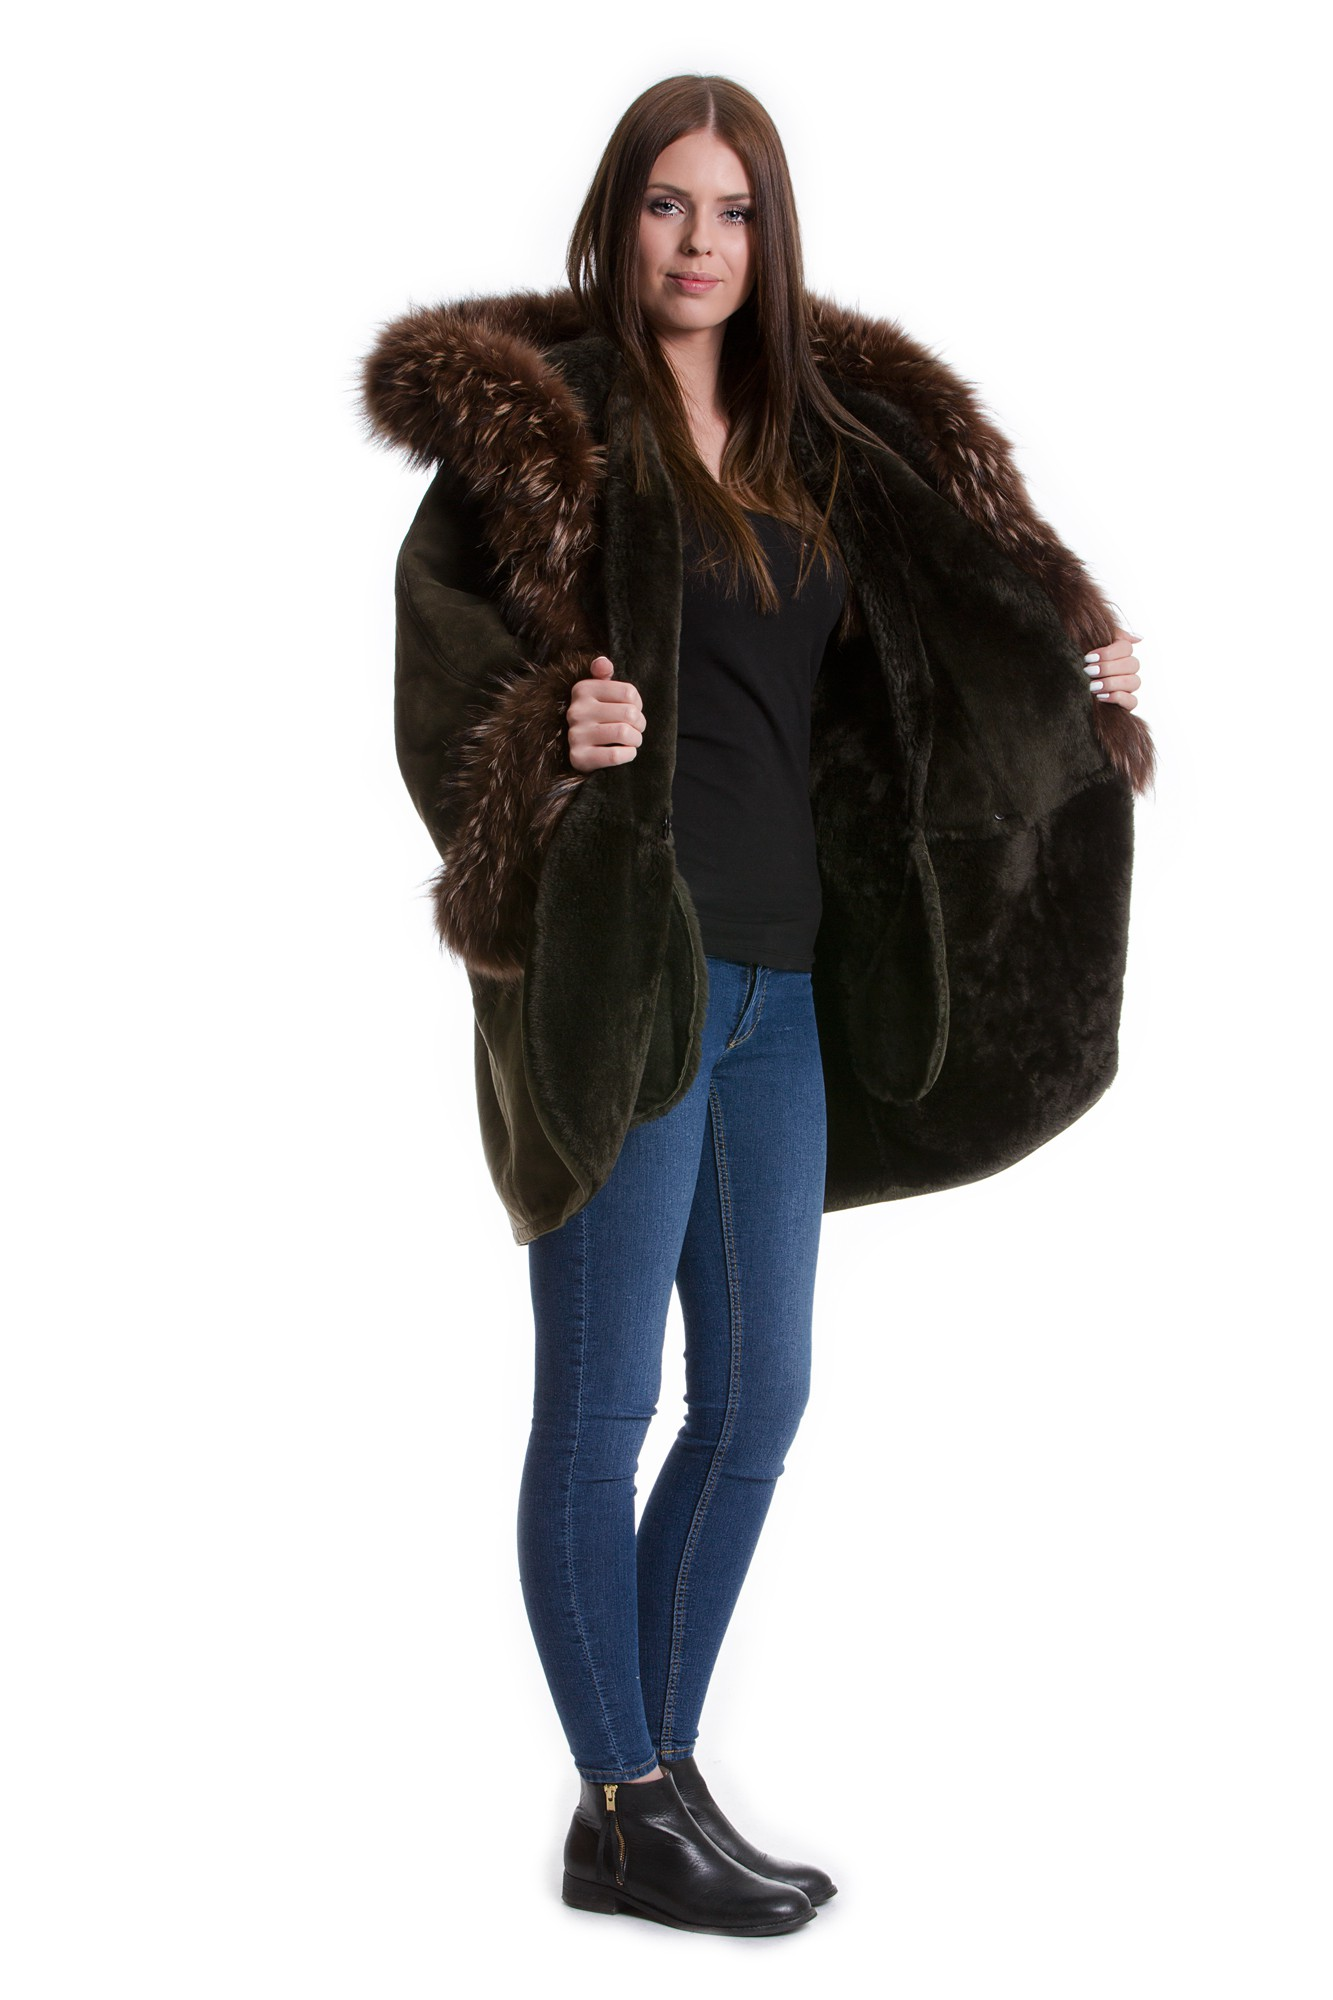 lammfell jacke mit fellkapuze fuchs echt pelz fell lamm 40 42 furs ebay. Black Bedroom Furniture Sets. Home Design Ideas